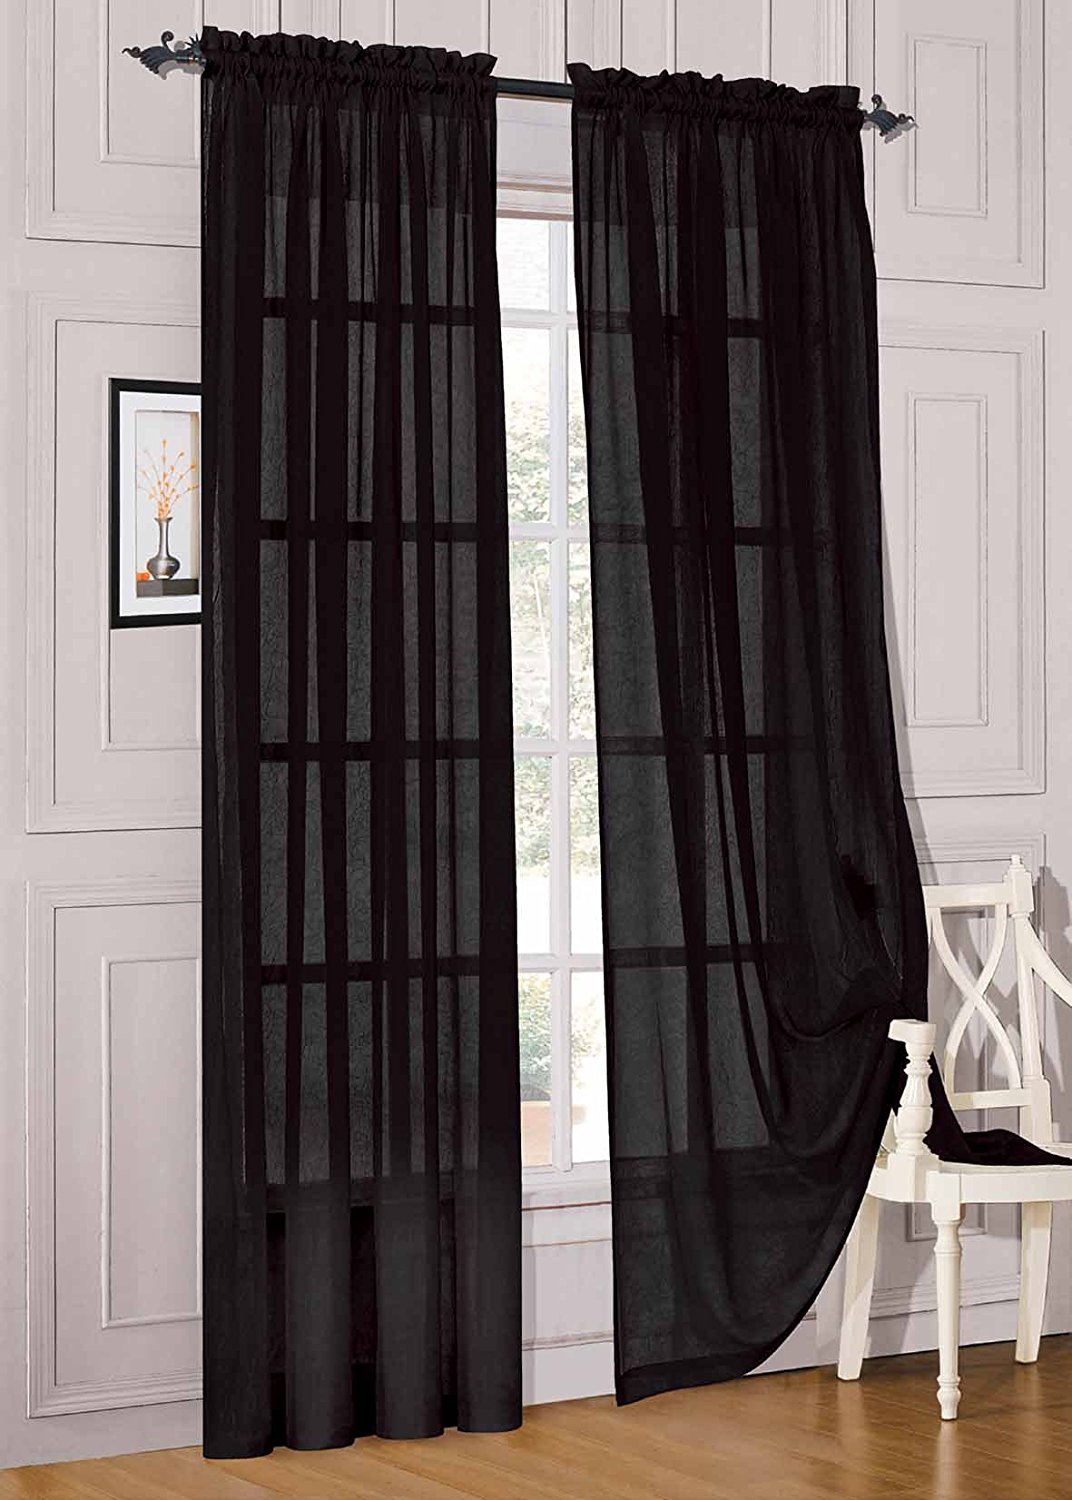 Elegant Comfort® 2 Piece Solid Sheer Panel With Rod Pocket – Window Curtain 60 Inch Width X 84 Inch Length – Black For Elegant Comfort Window Sheer Curtain Panel Pairs (View 13 of 20)